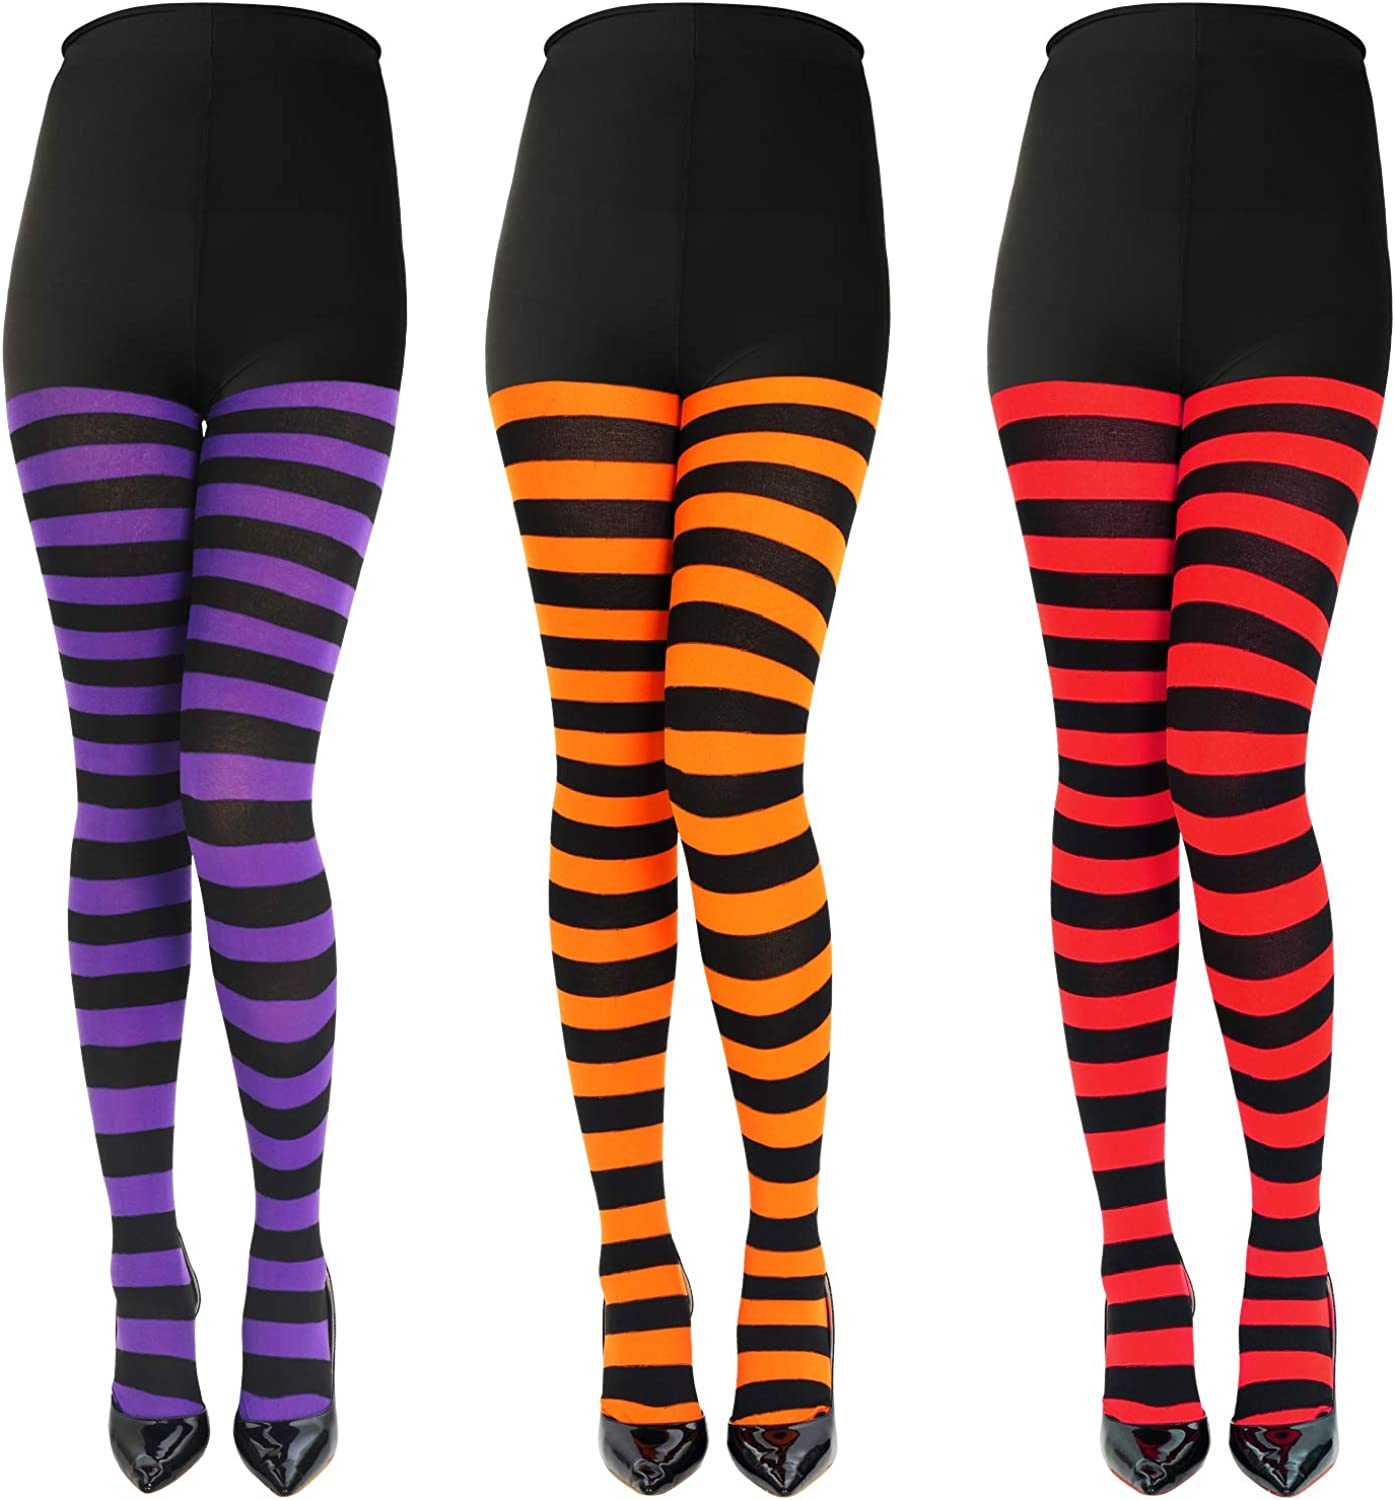 Adult Size 4 Pairs Halloween Striped Stockings Full Length Black and White Halloween Tights Pantyhose for Women Girls